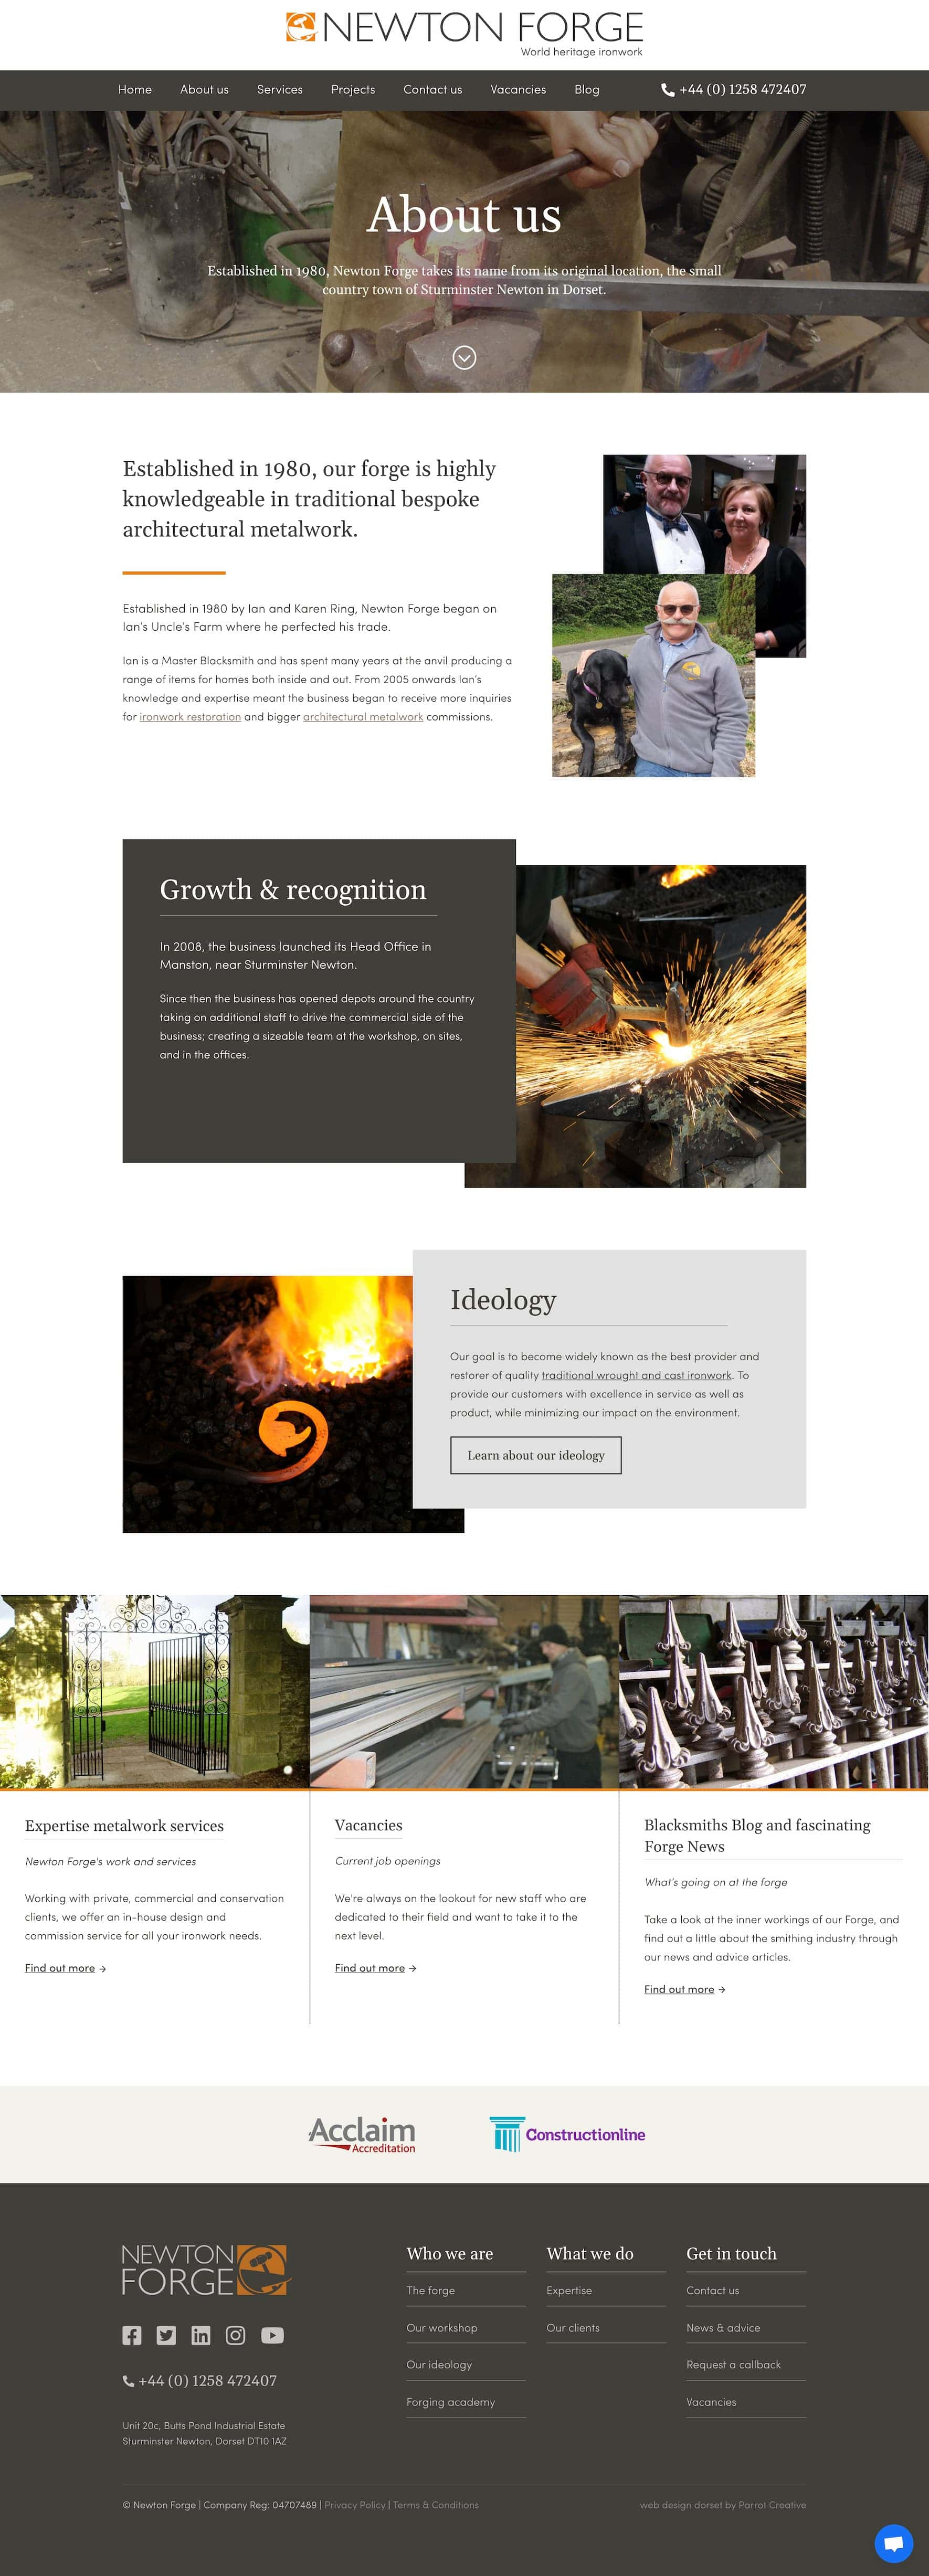 Traditional metalwork about page design